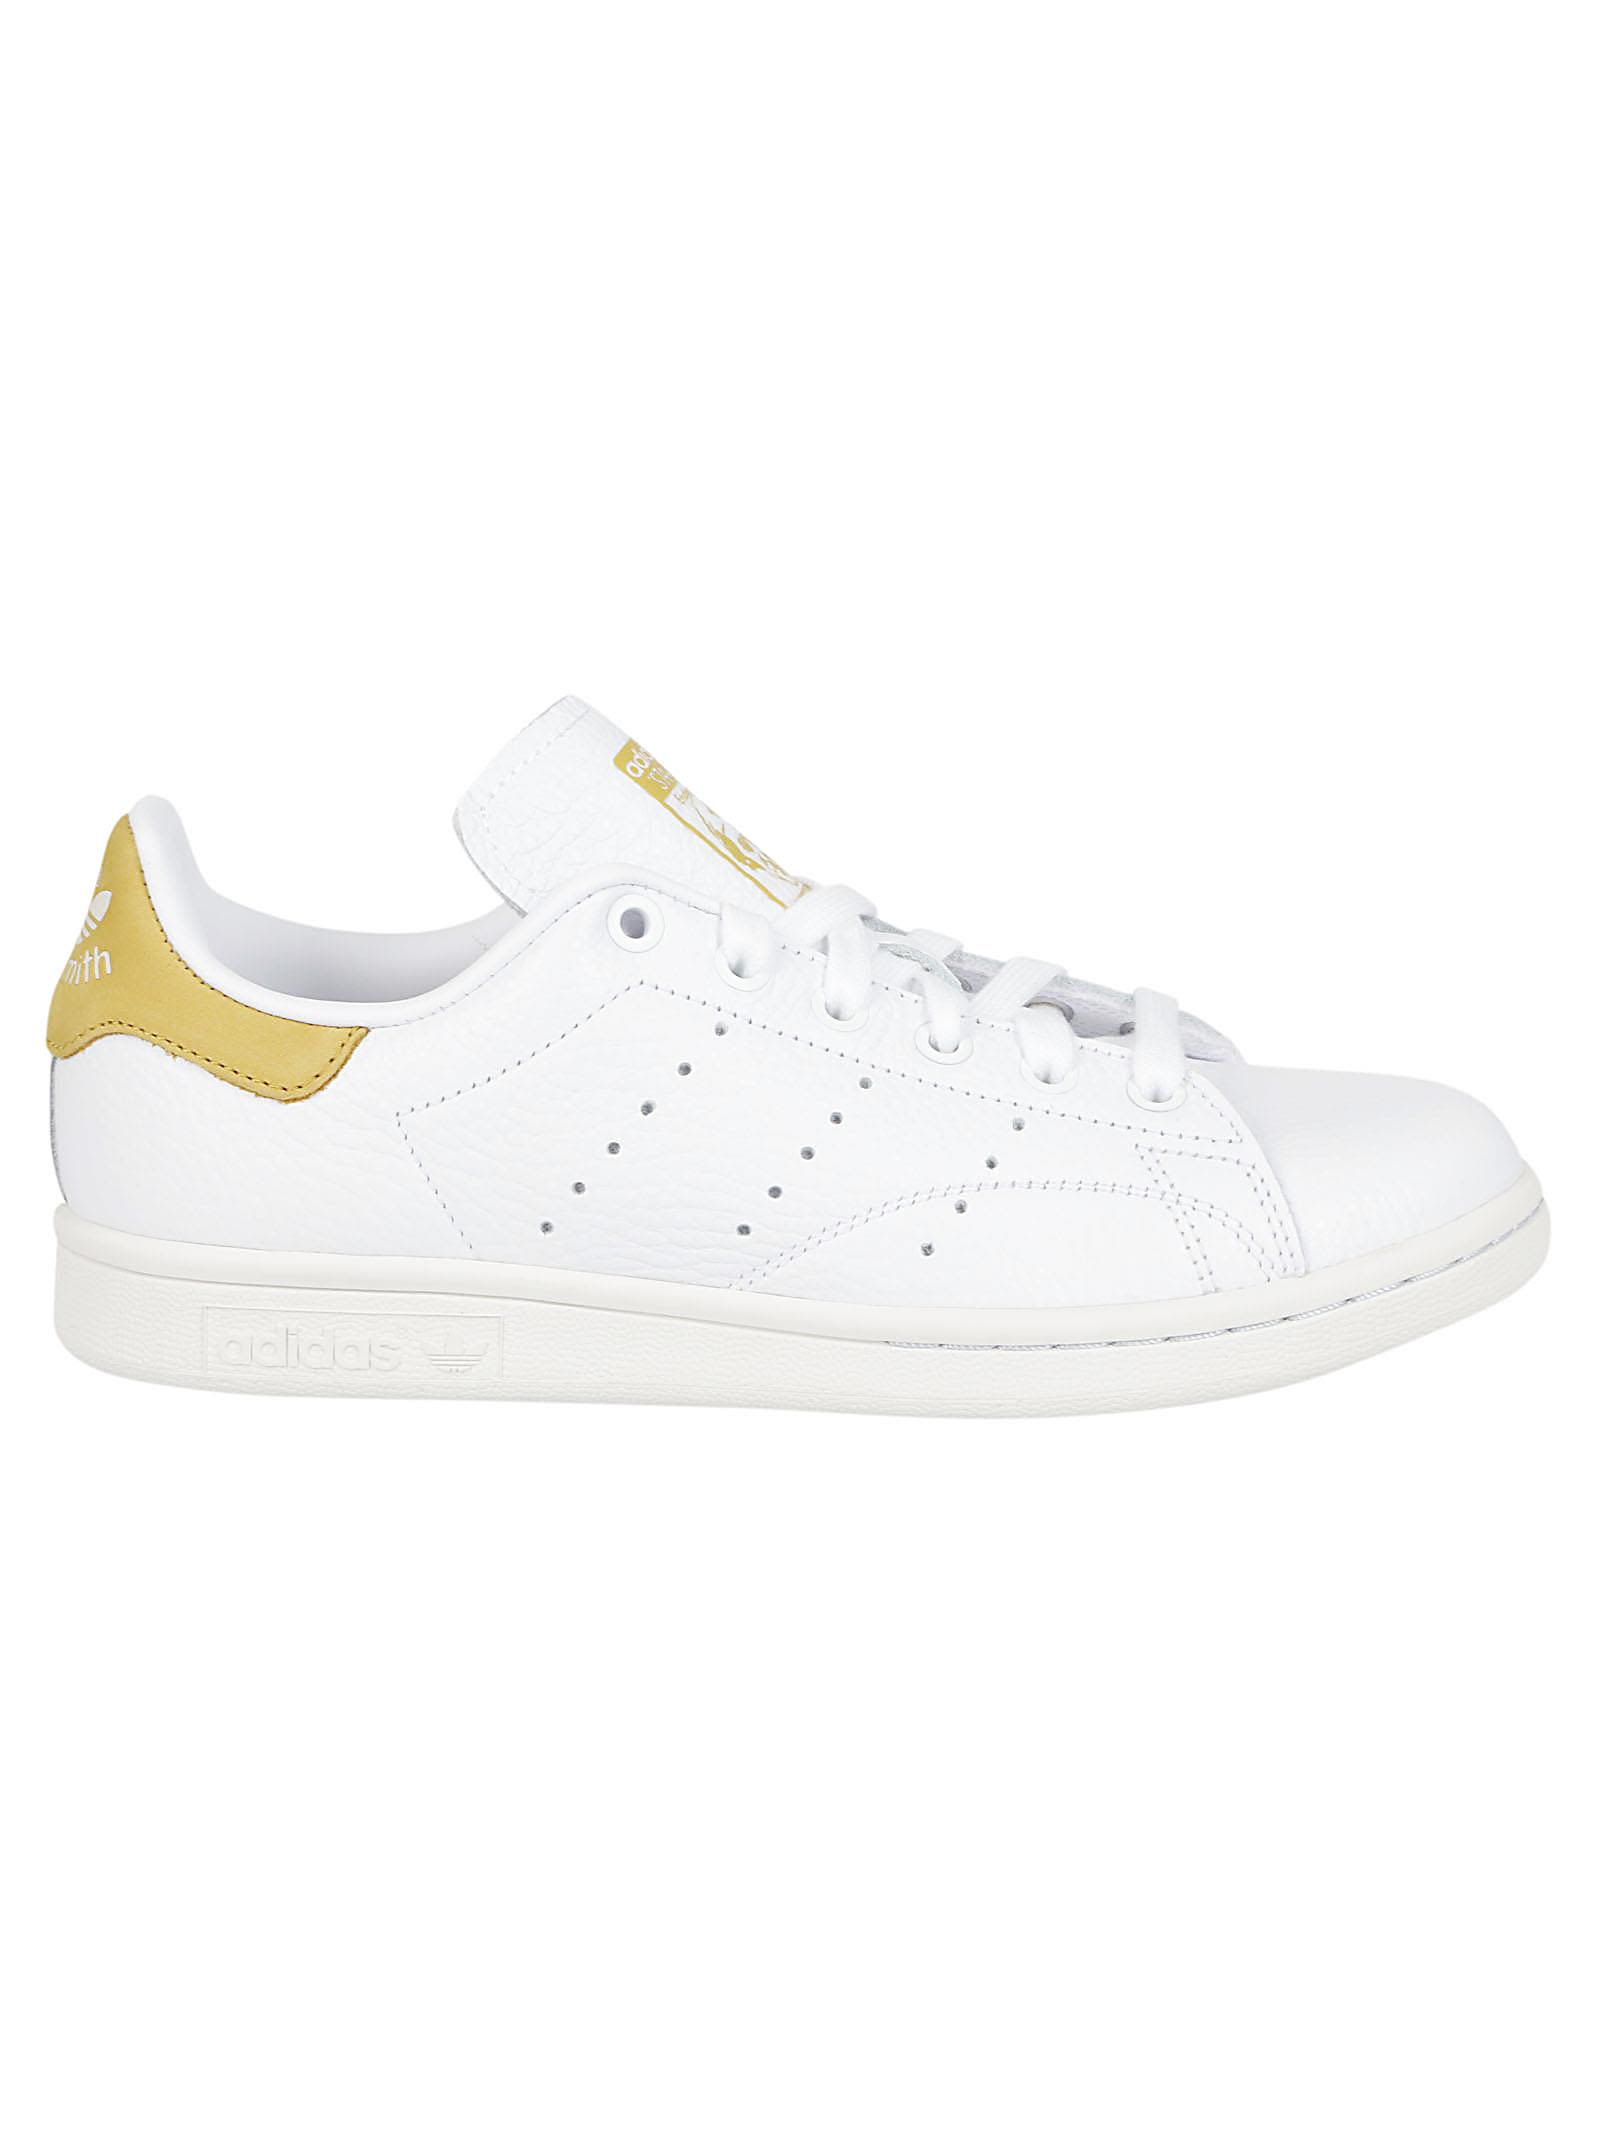 new styles 49065 8ad4d Adidas Originals Stan Smith Sneakers - White ...